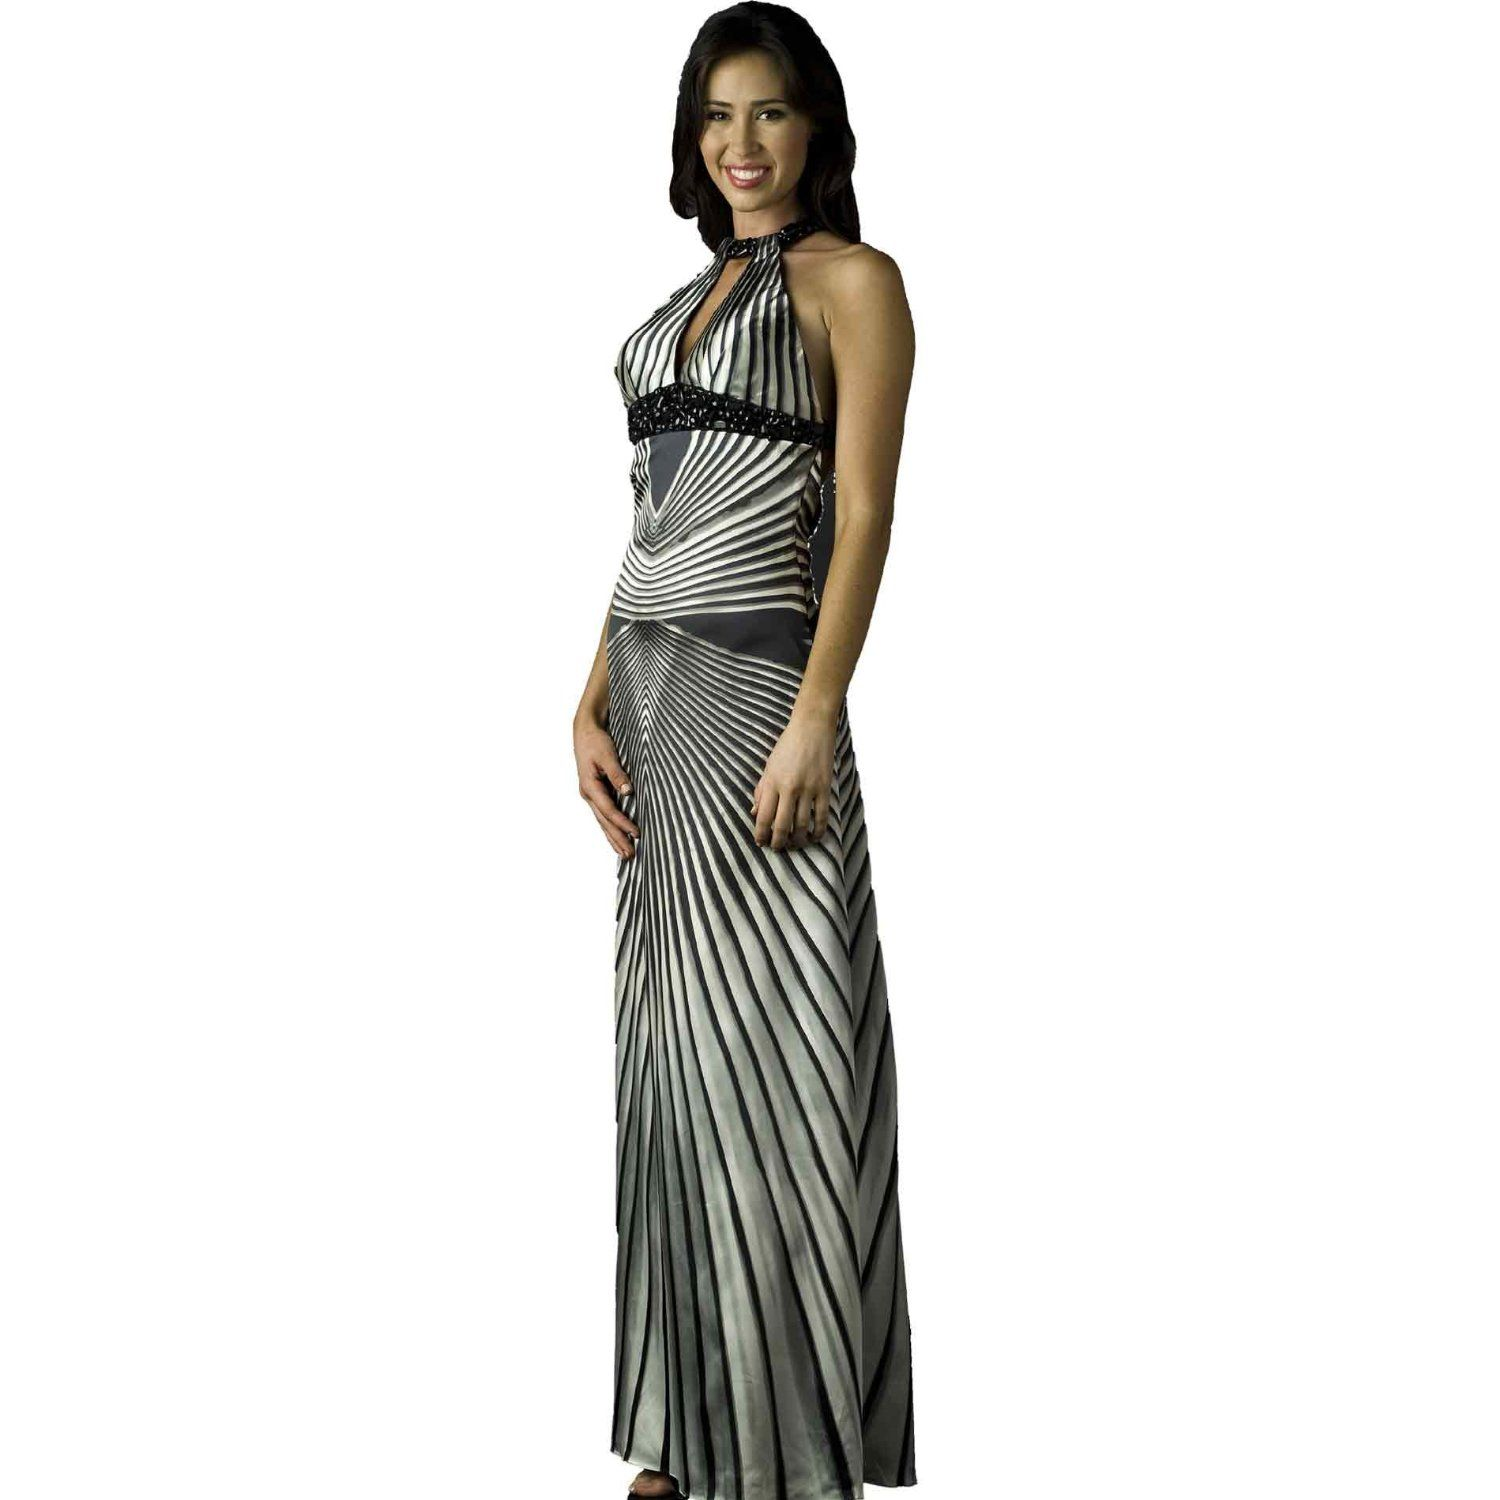 Beaded evening gown sequin prom dress azonbeaded